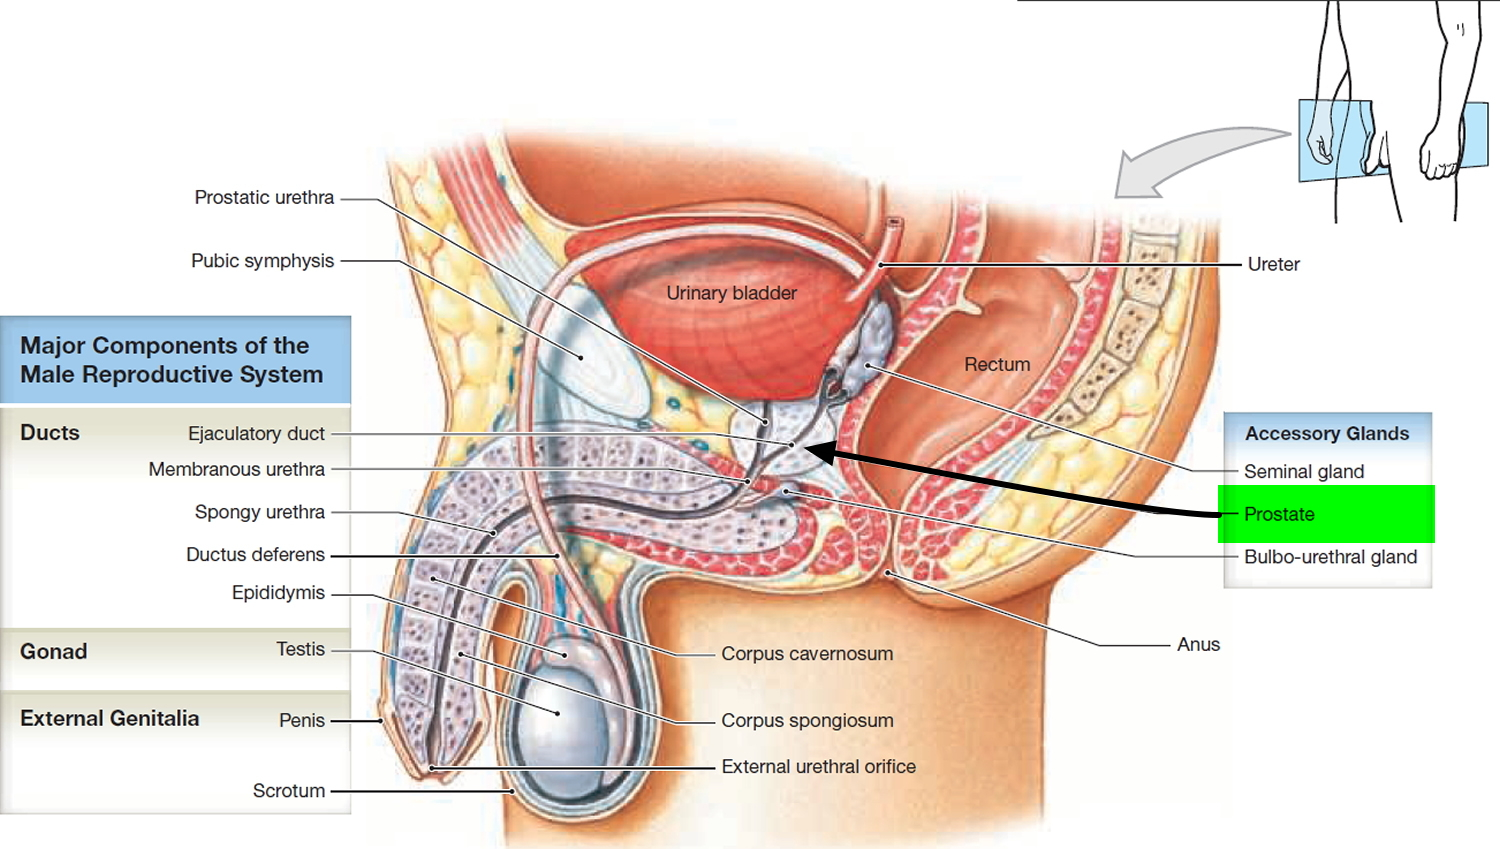 prostate gland prostate gland location and function Prostate Treatment prostate gland